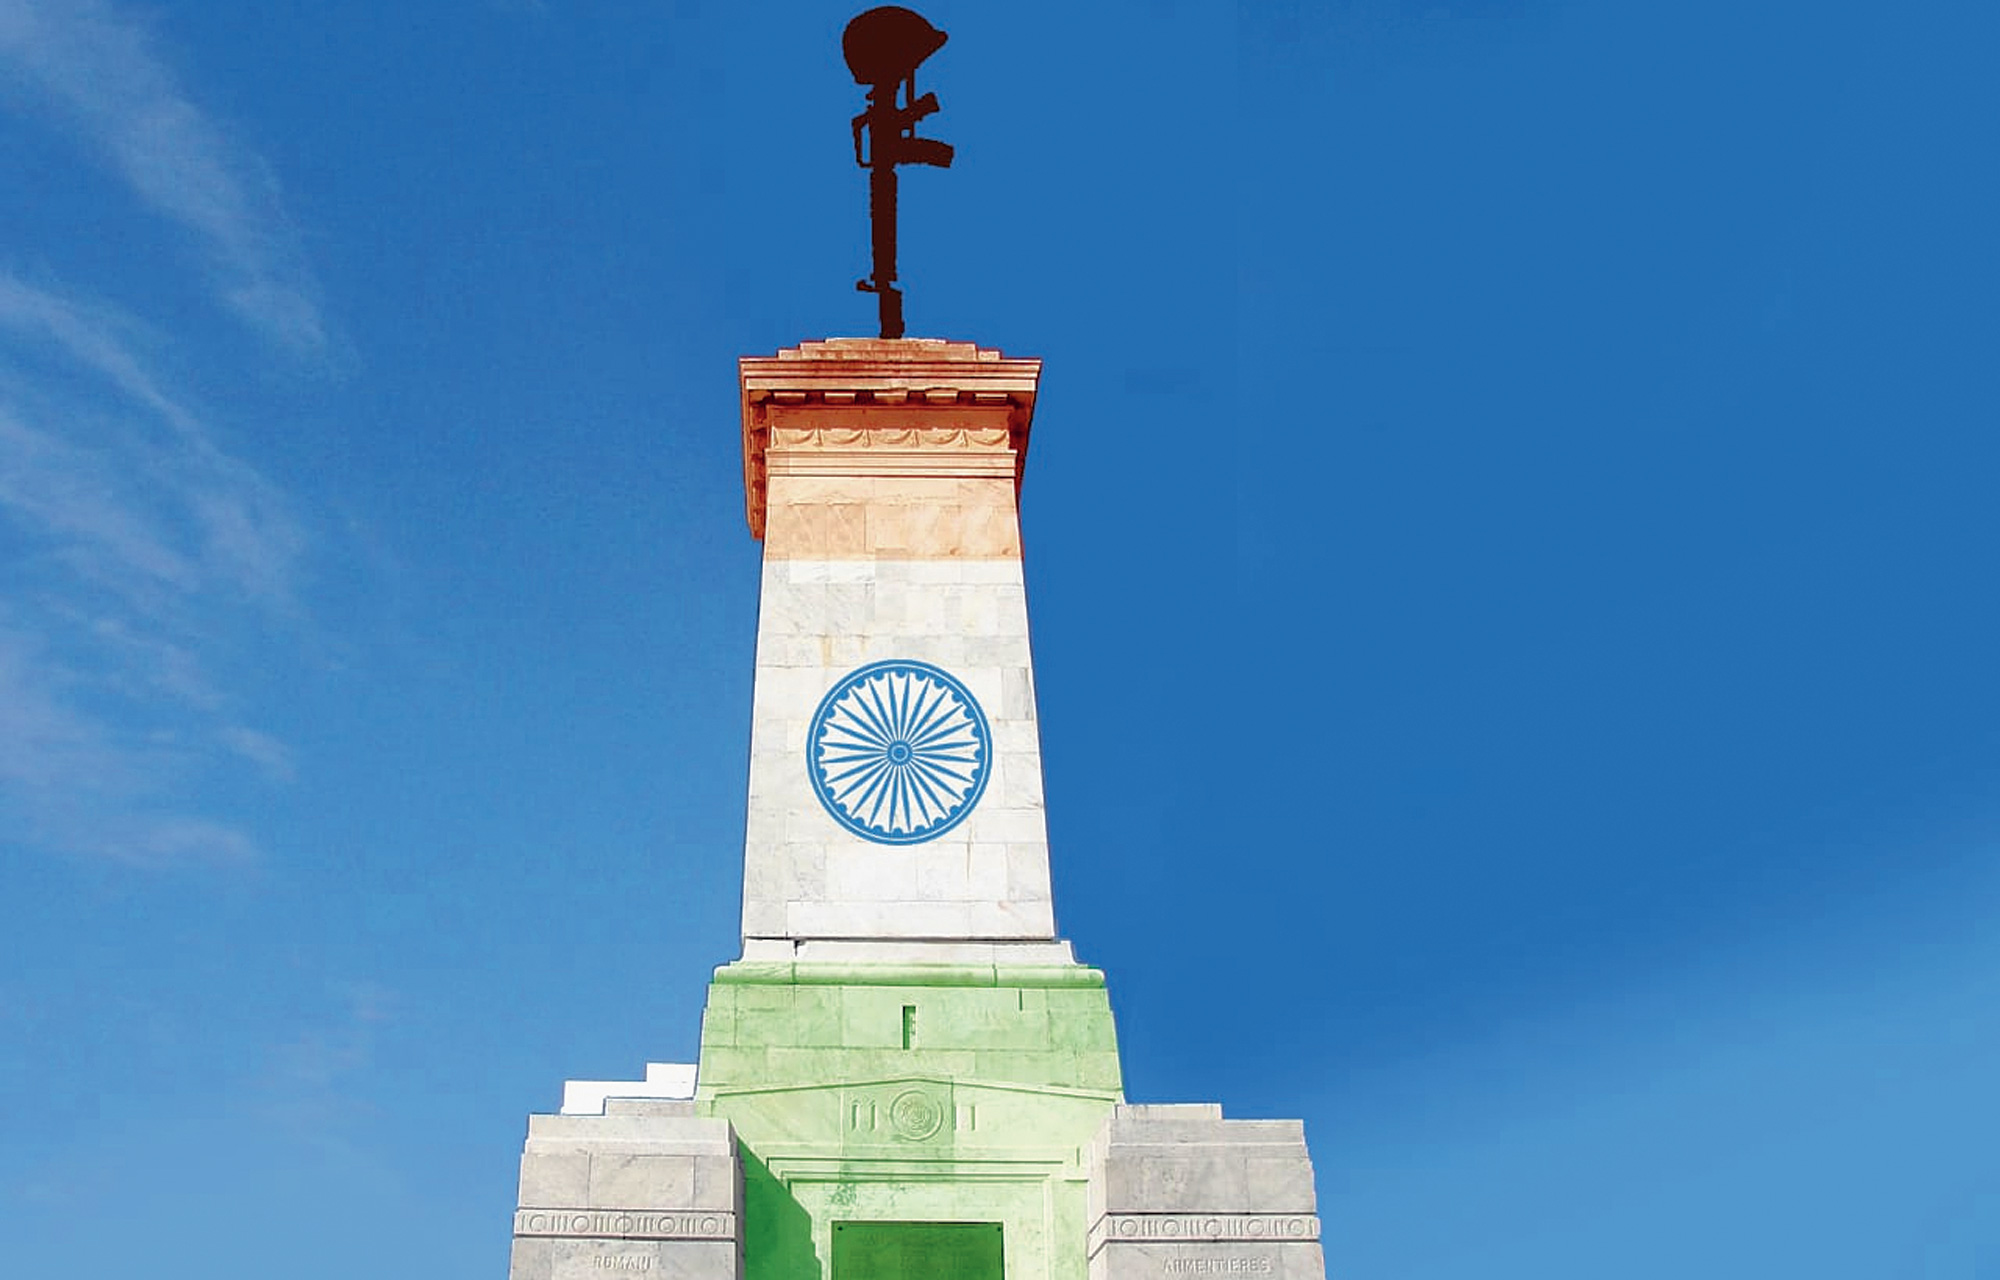 An artist's impression of the proposed martyrs' column in Asansol.